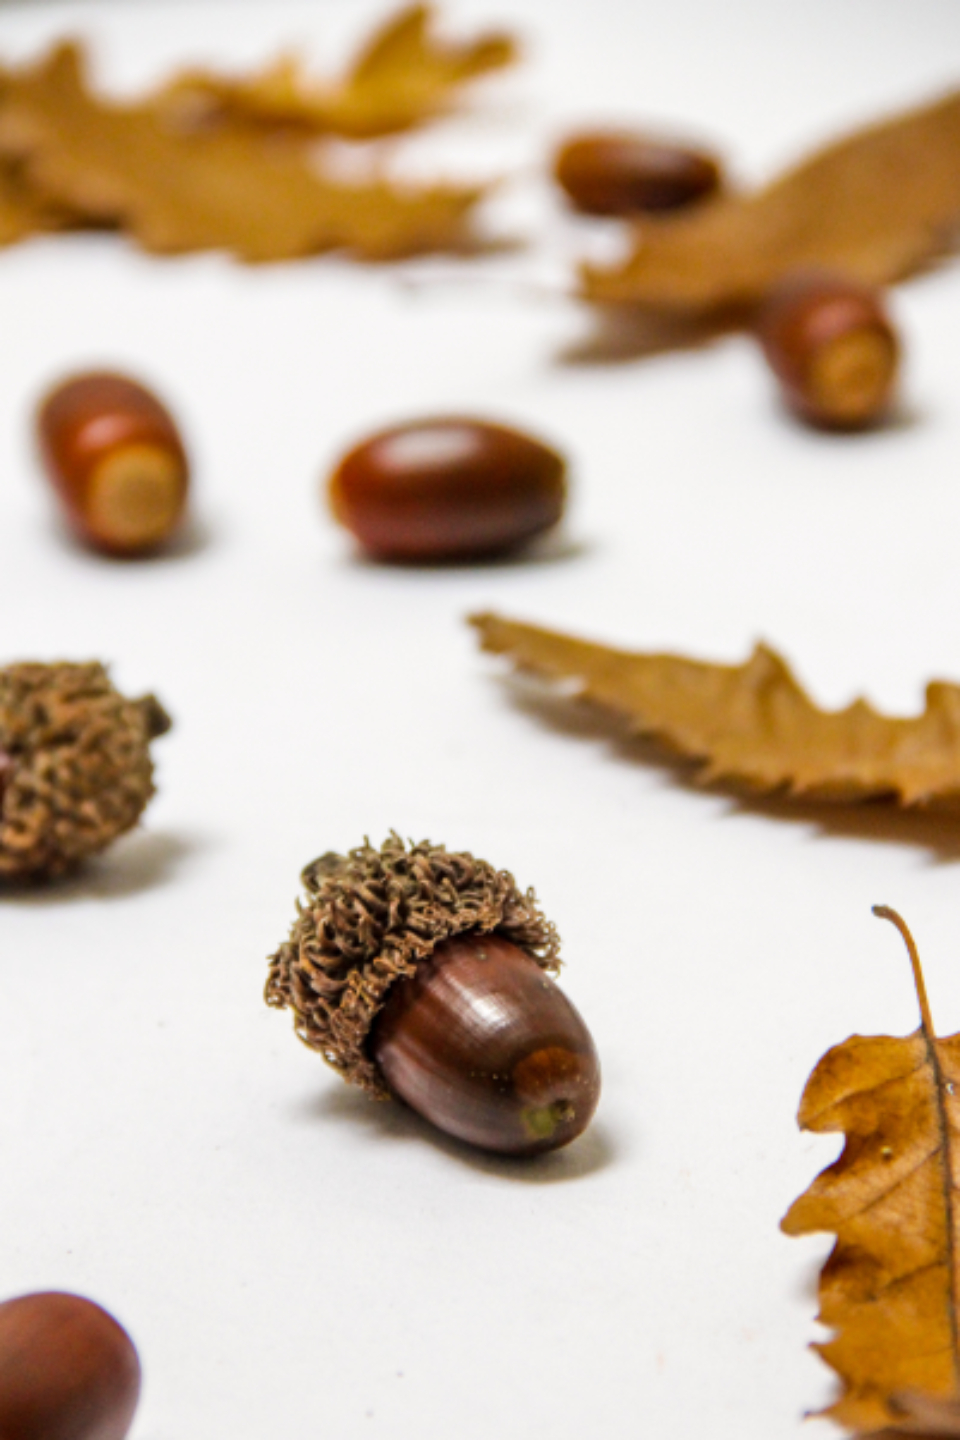 oak leaves acorns close up fall autumn foliage season bokeh nature natural organic nut oaknut objects brown macro